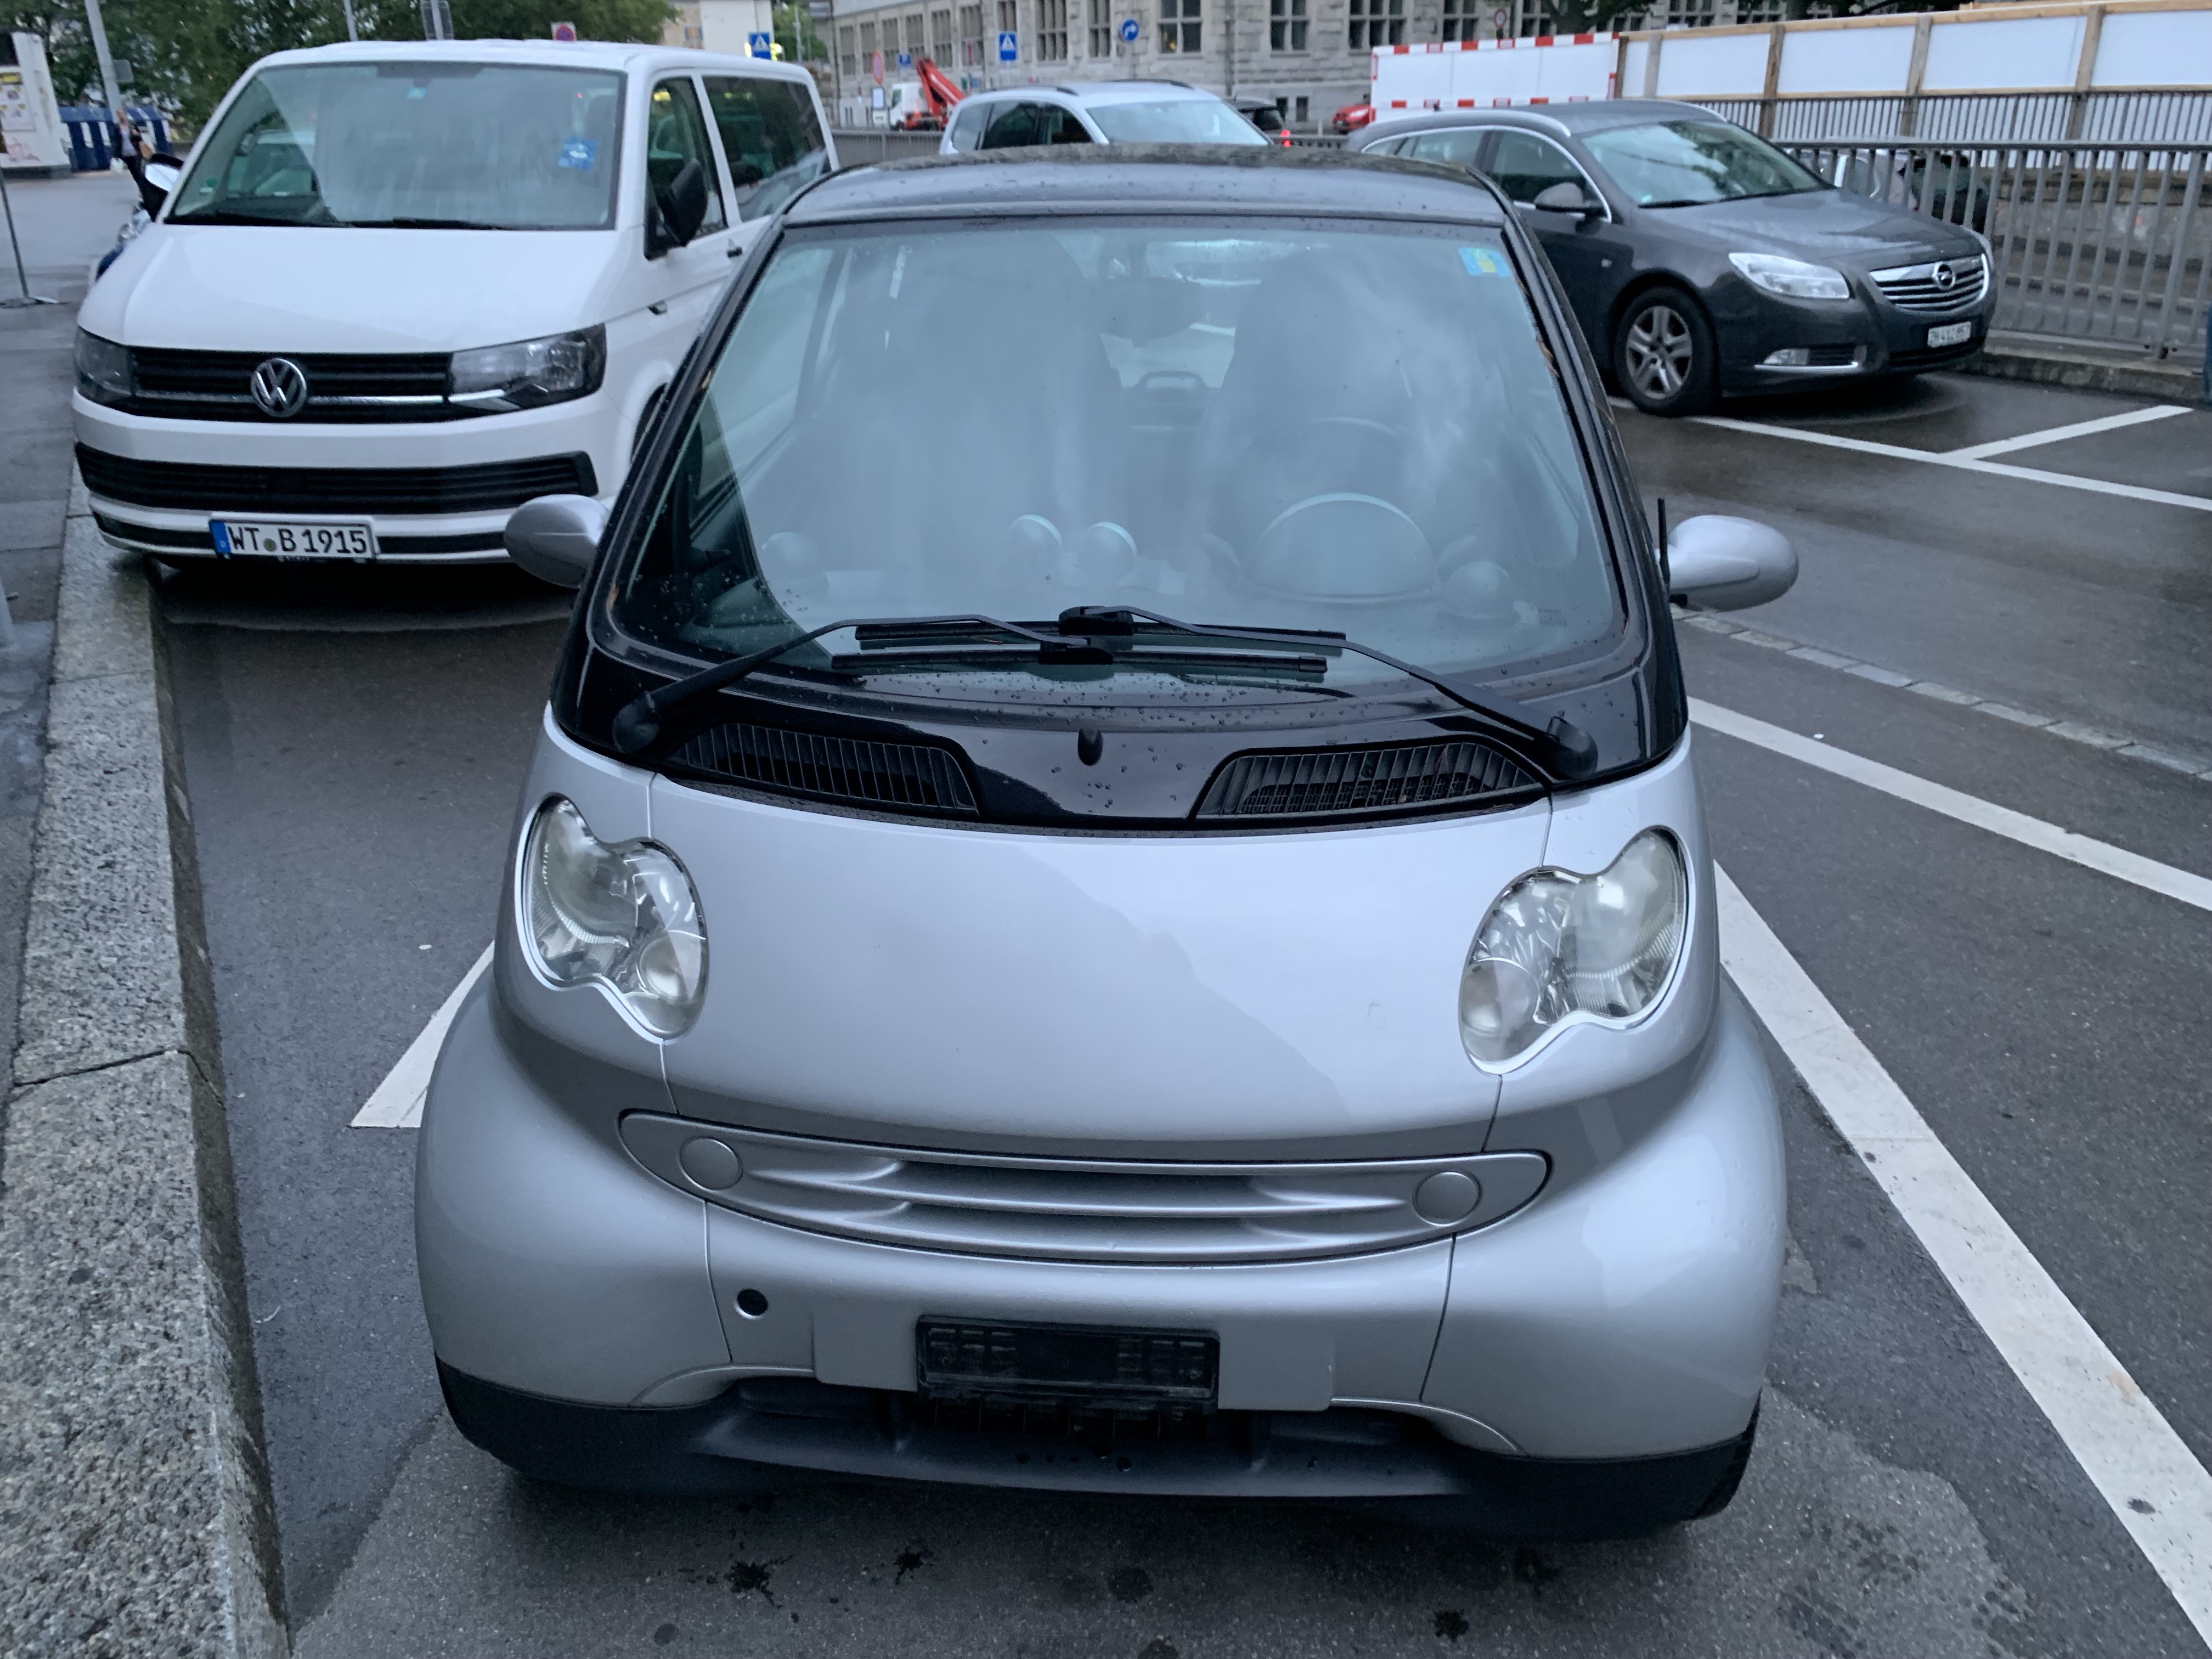 saloon Smart City/Fortwo Fortwo Coupé 700 75 Brabus